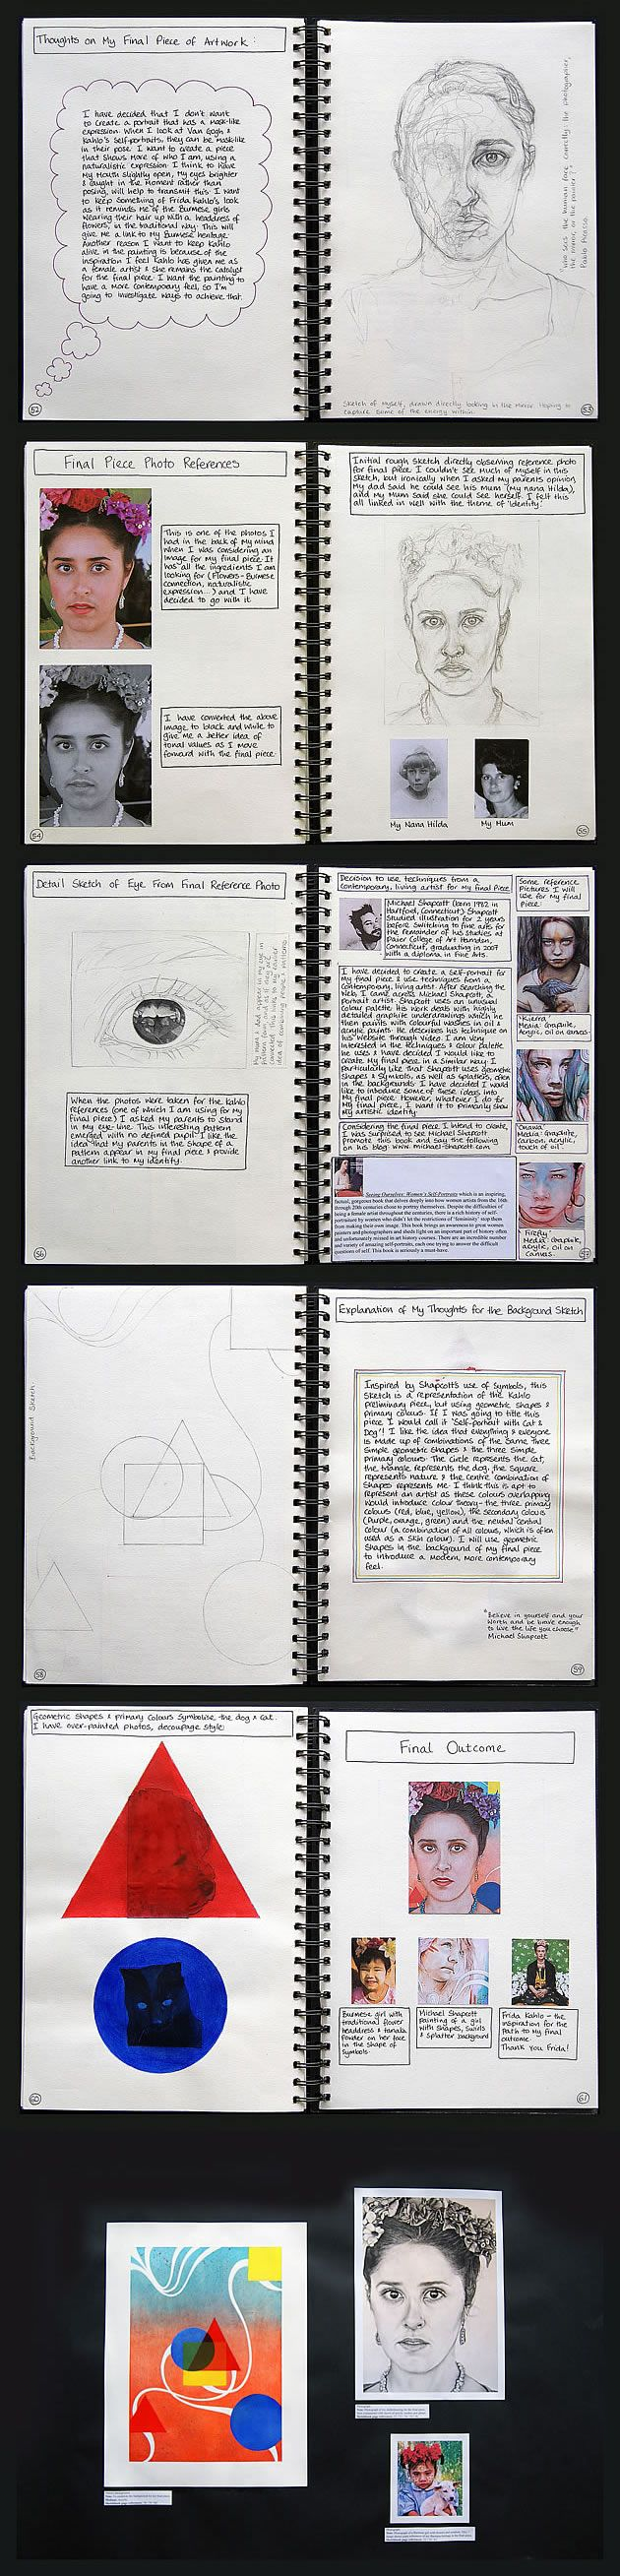 With meticulous organisation, Abby works towards her final piece. This sequence of sketchbook pages shows a self portrait that brings together ideas from her earlier work.